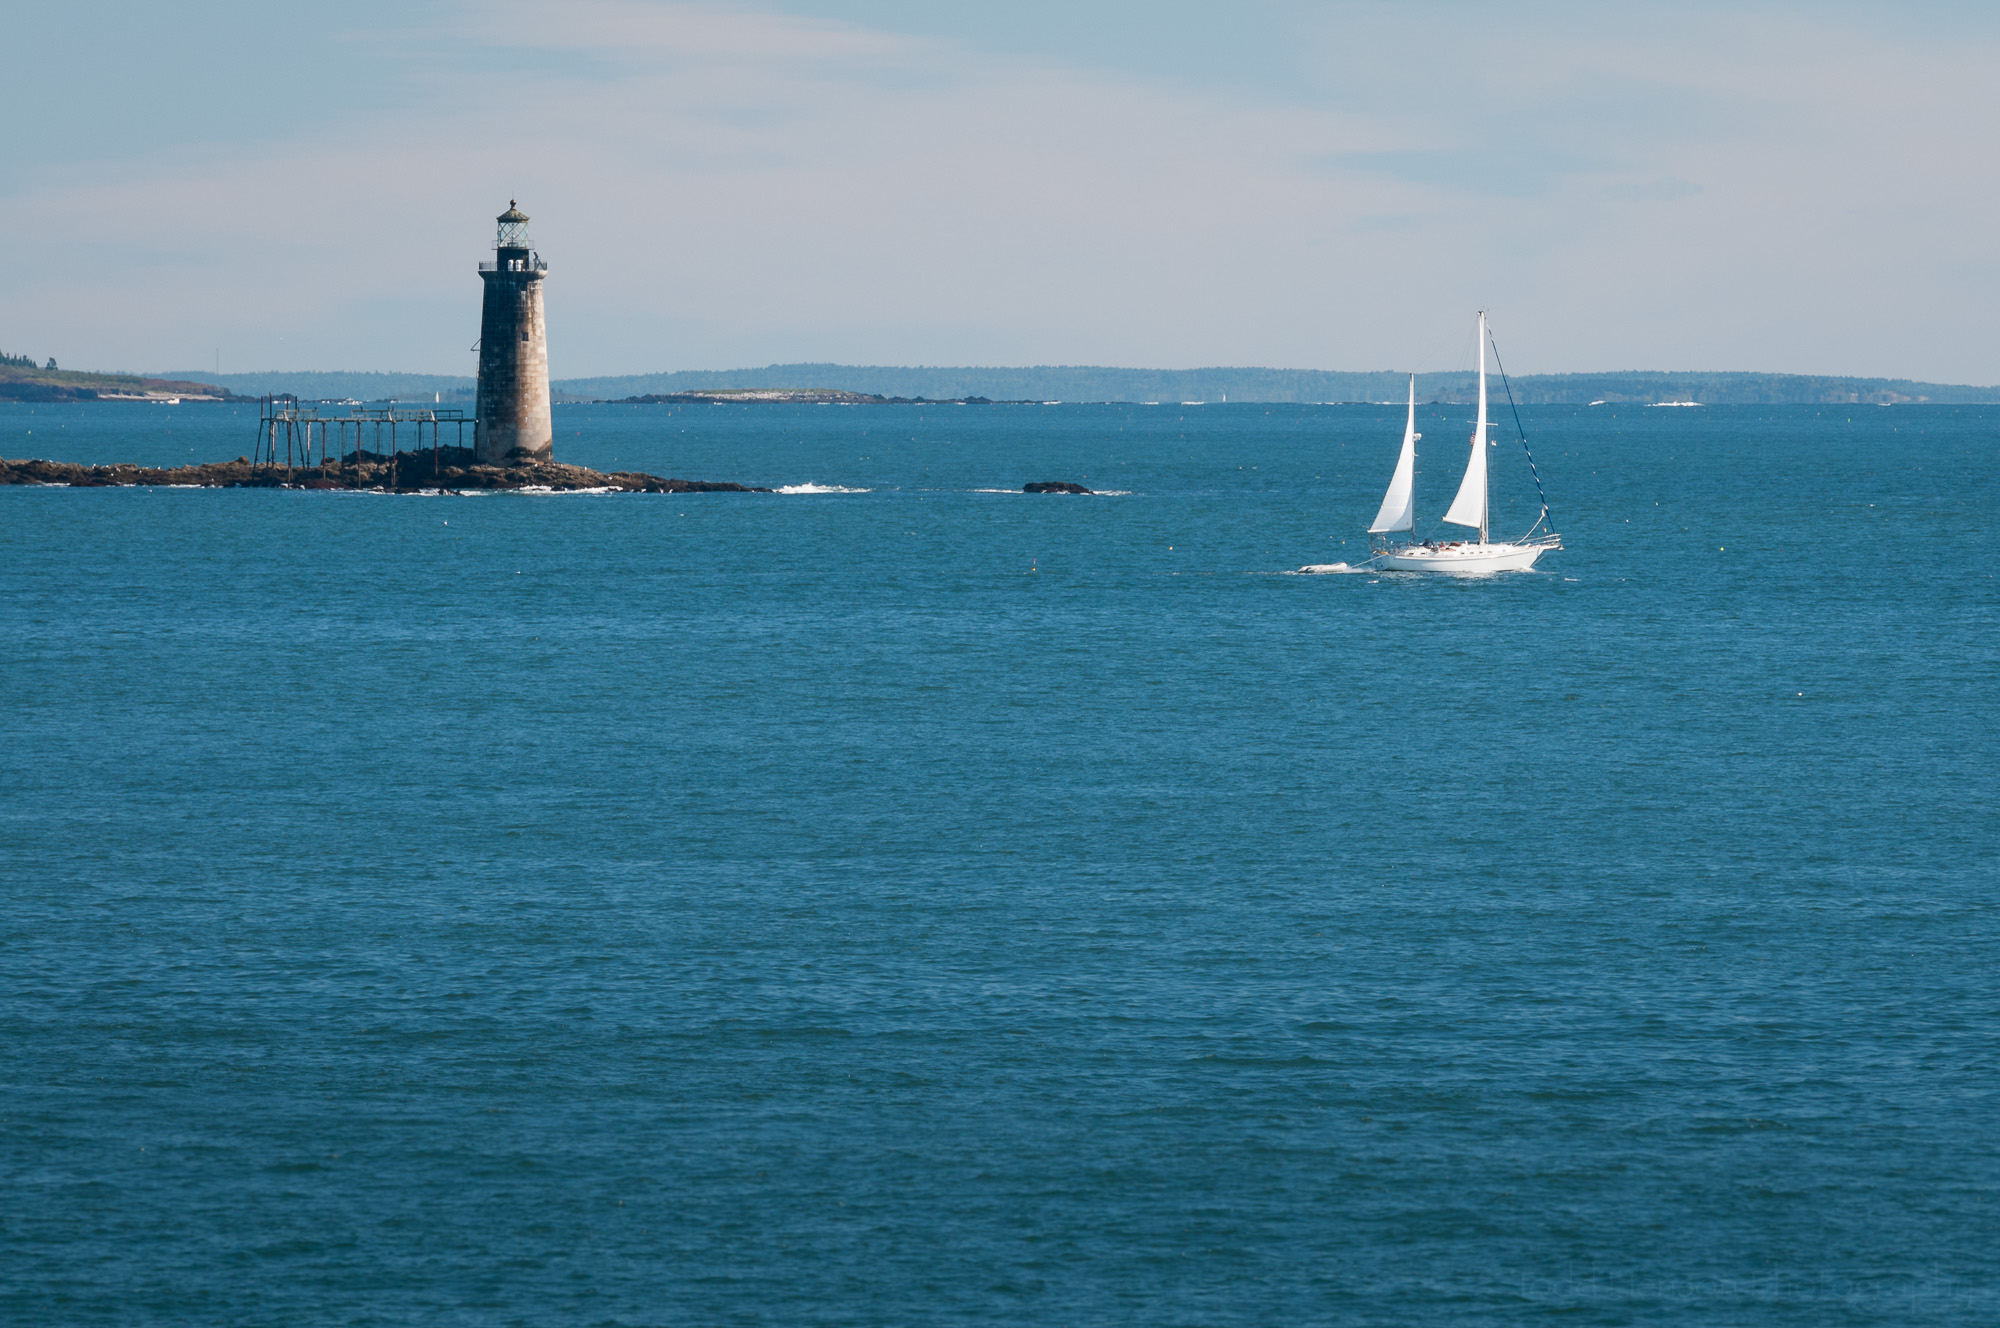 Ram Island Ledge Light, in Maine, with white sailboat in foreground